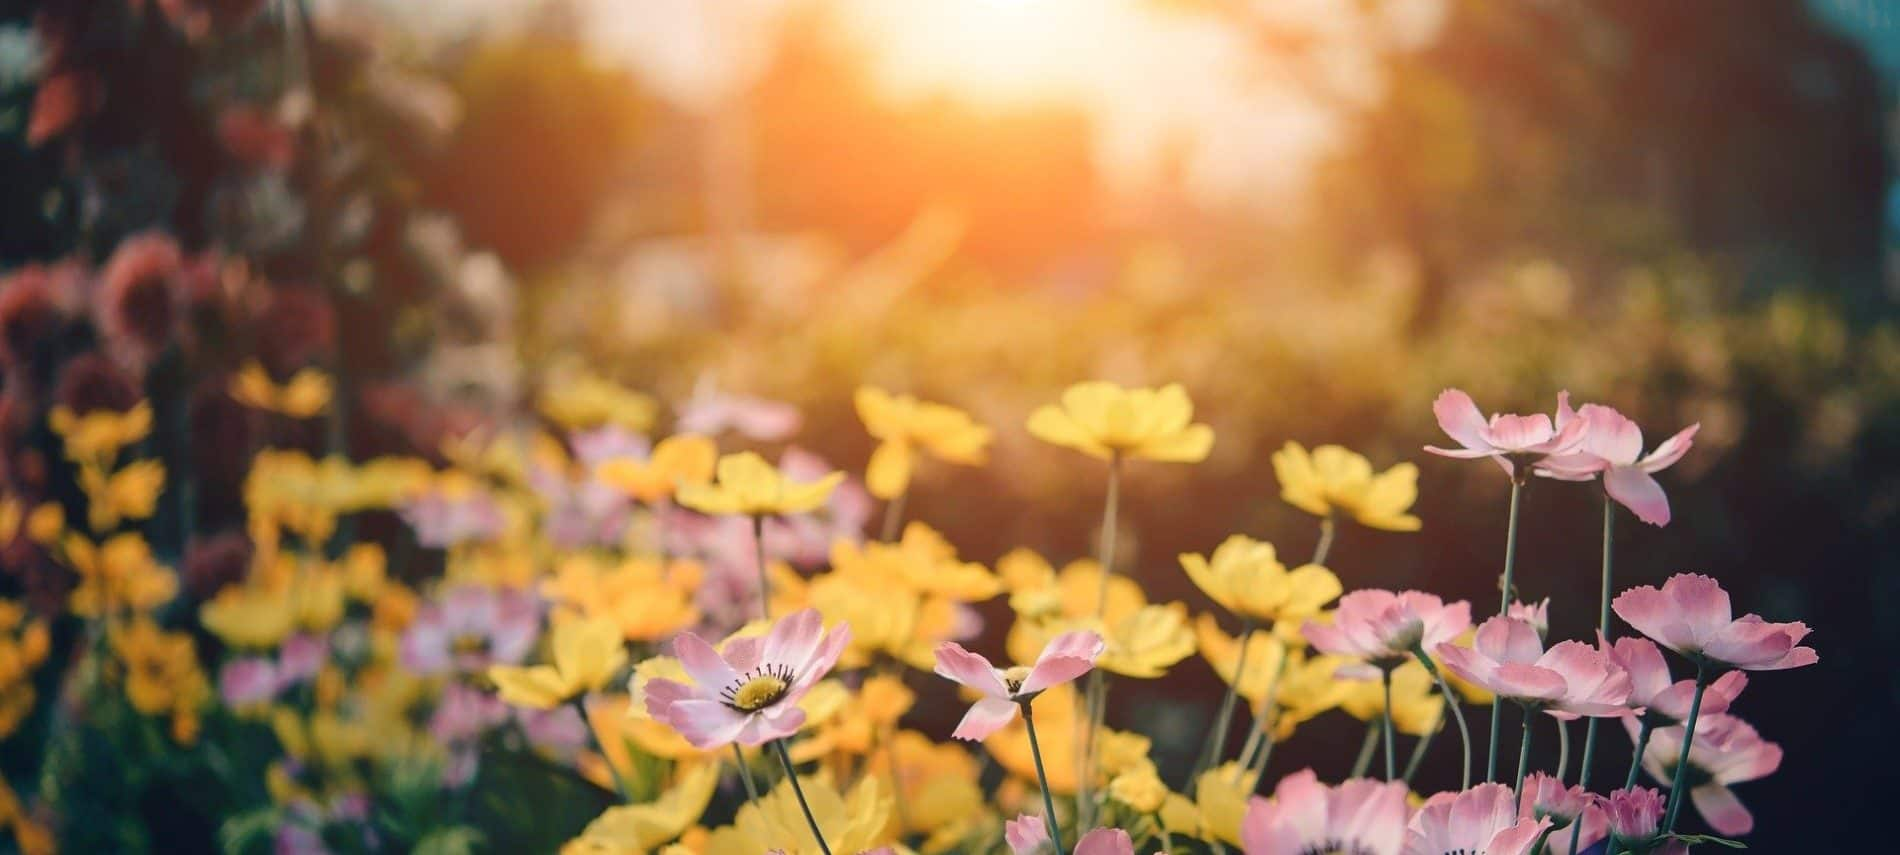 Landscaping full of little pink and yellow flowers with blurred sunlight in background